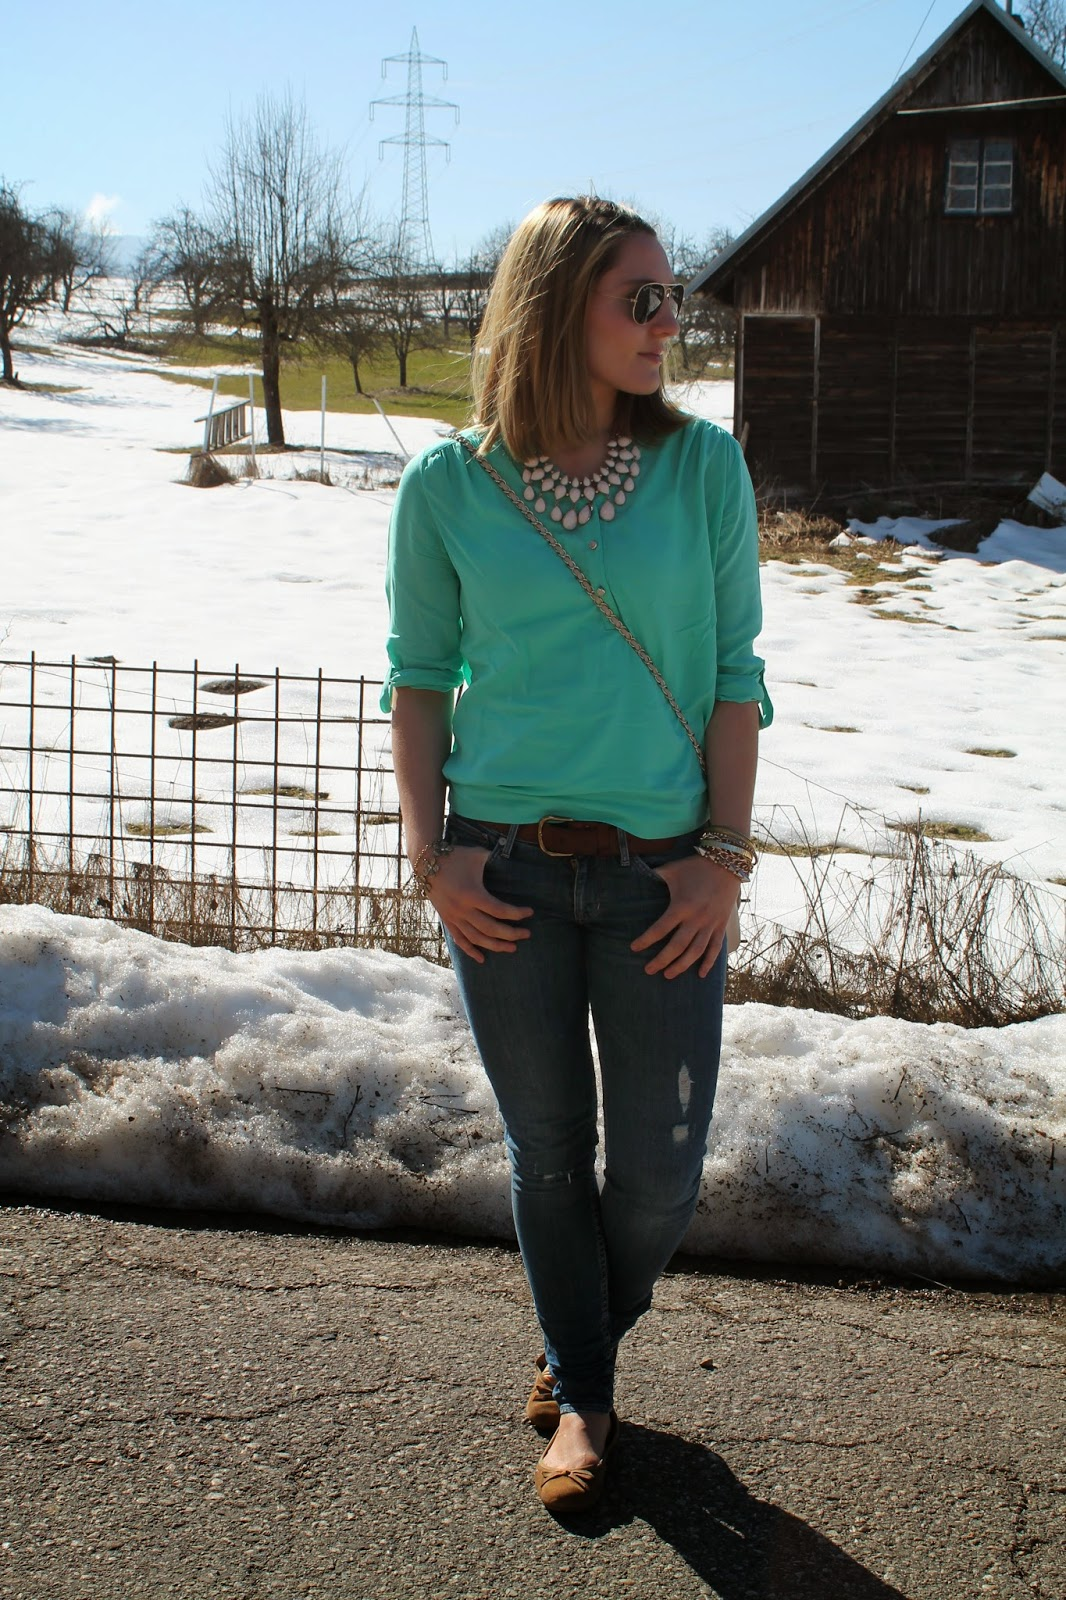 Fashionblogger Österreich Austria Kärnten Carinthia Klagenfurt Vienna Wien New Yorker Spring Collection Blouse Shirt H&M Jeans Statement Necklace Frühling 2014 Tommy Hilfiger Flats Ray Ban Aviator Blogger Streetstyle